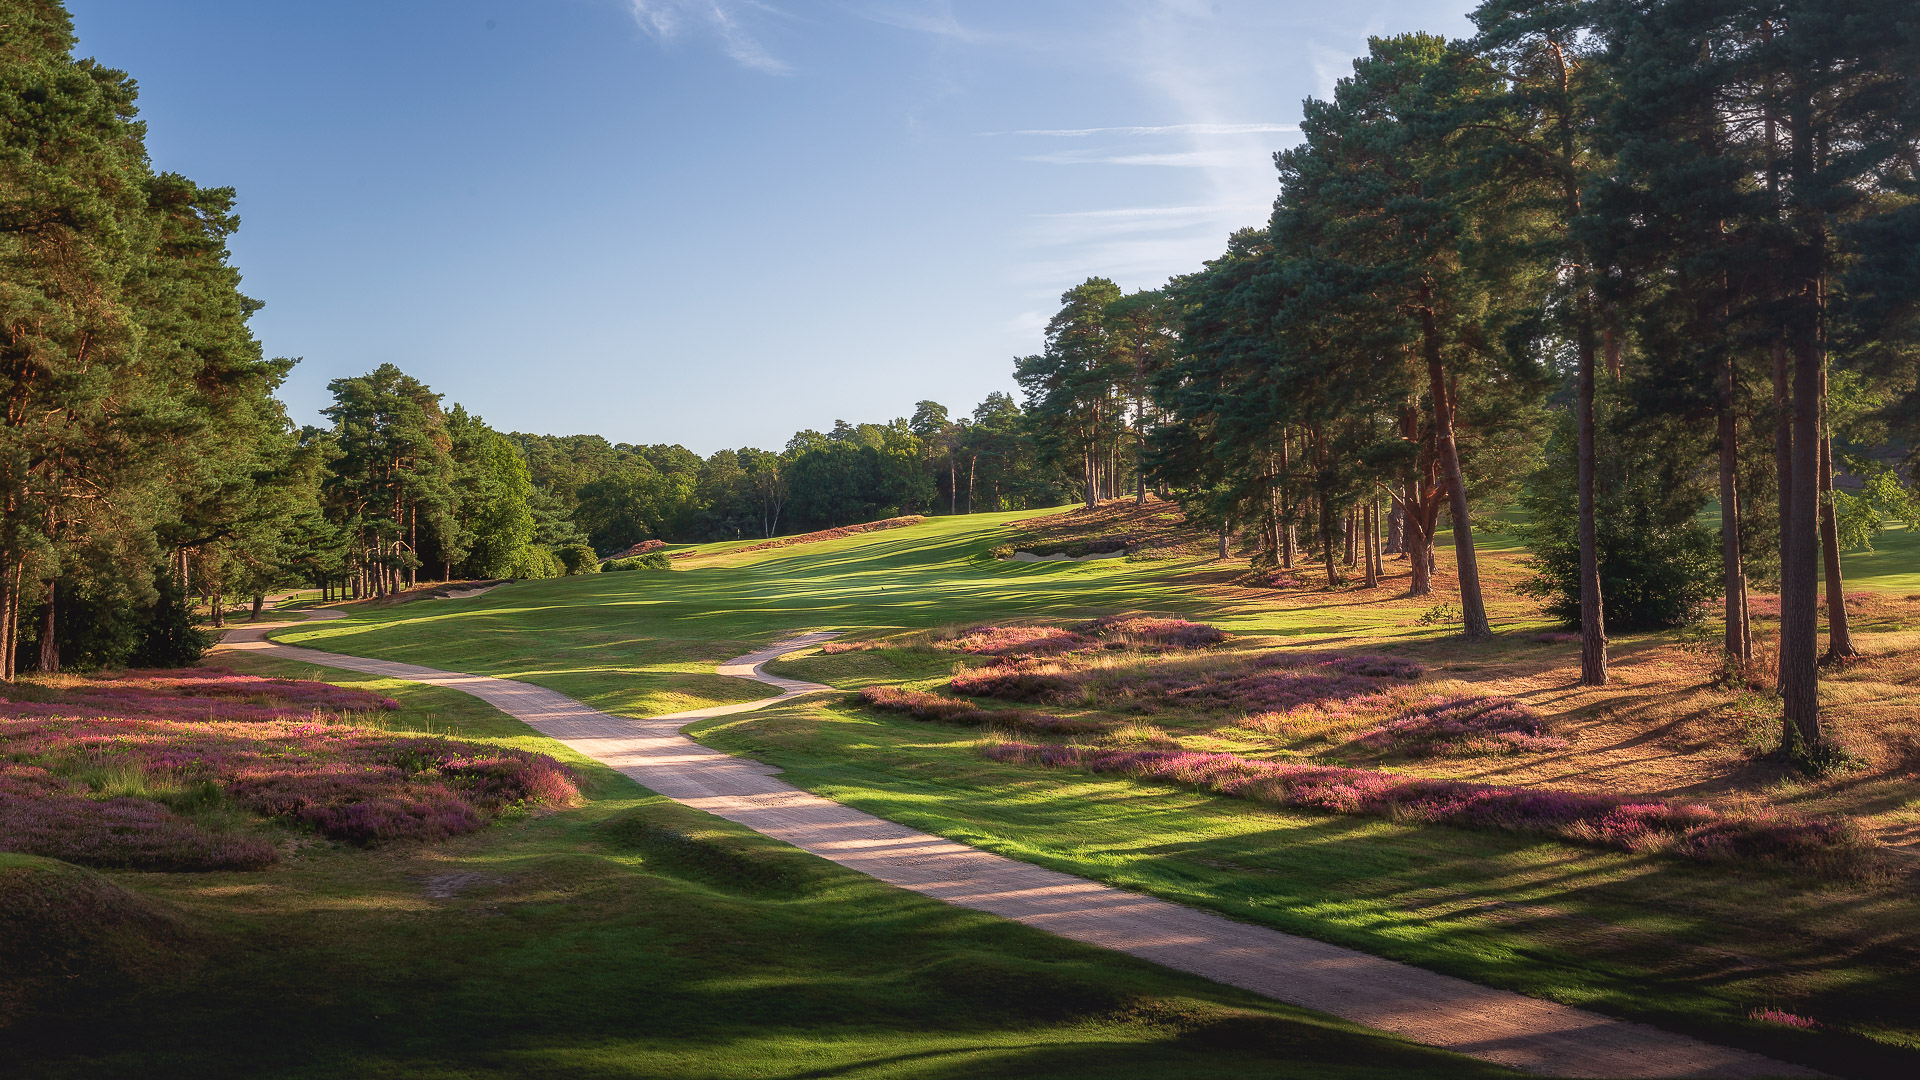 18th-Hole-St-Georges-Hill-Golf-Club-2495-Edit